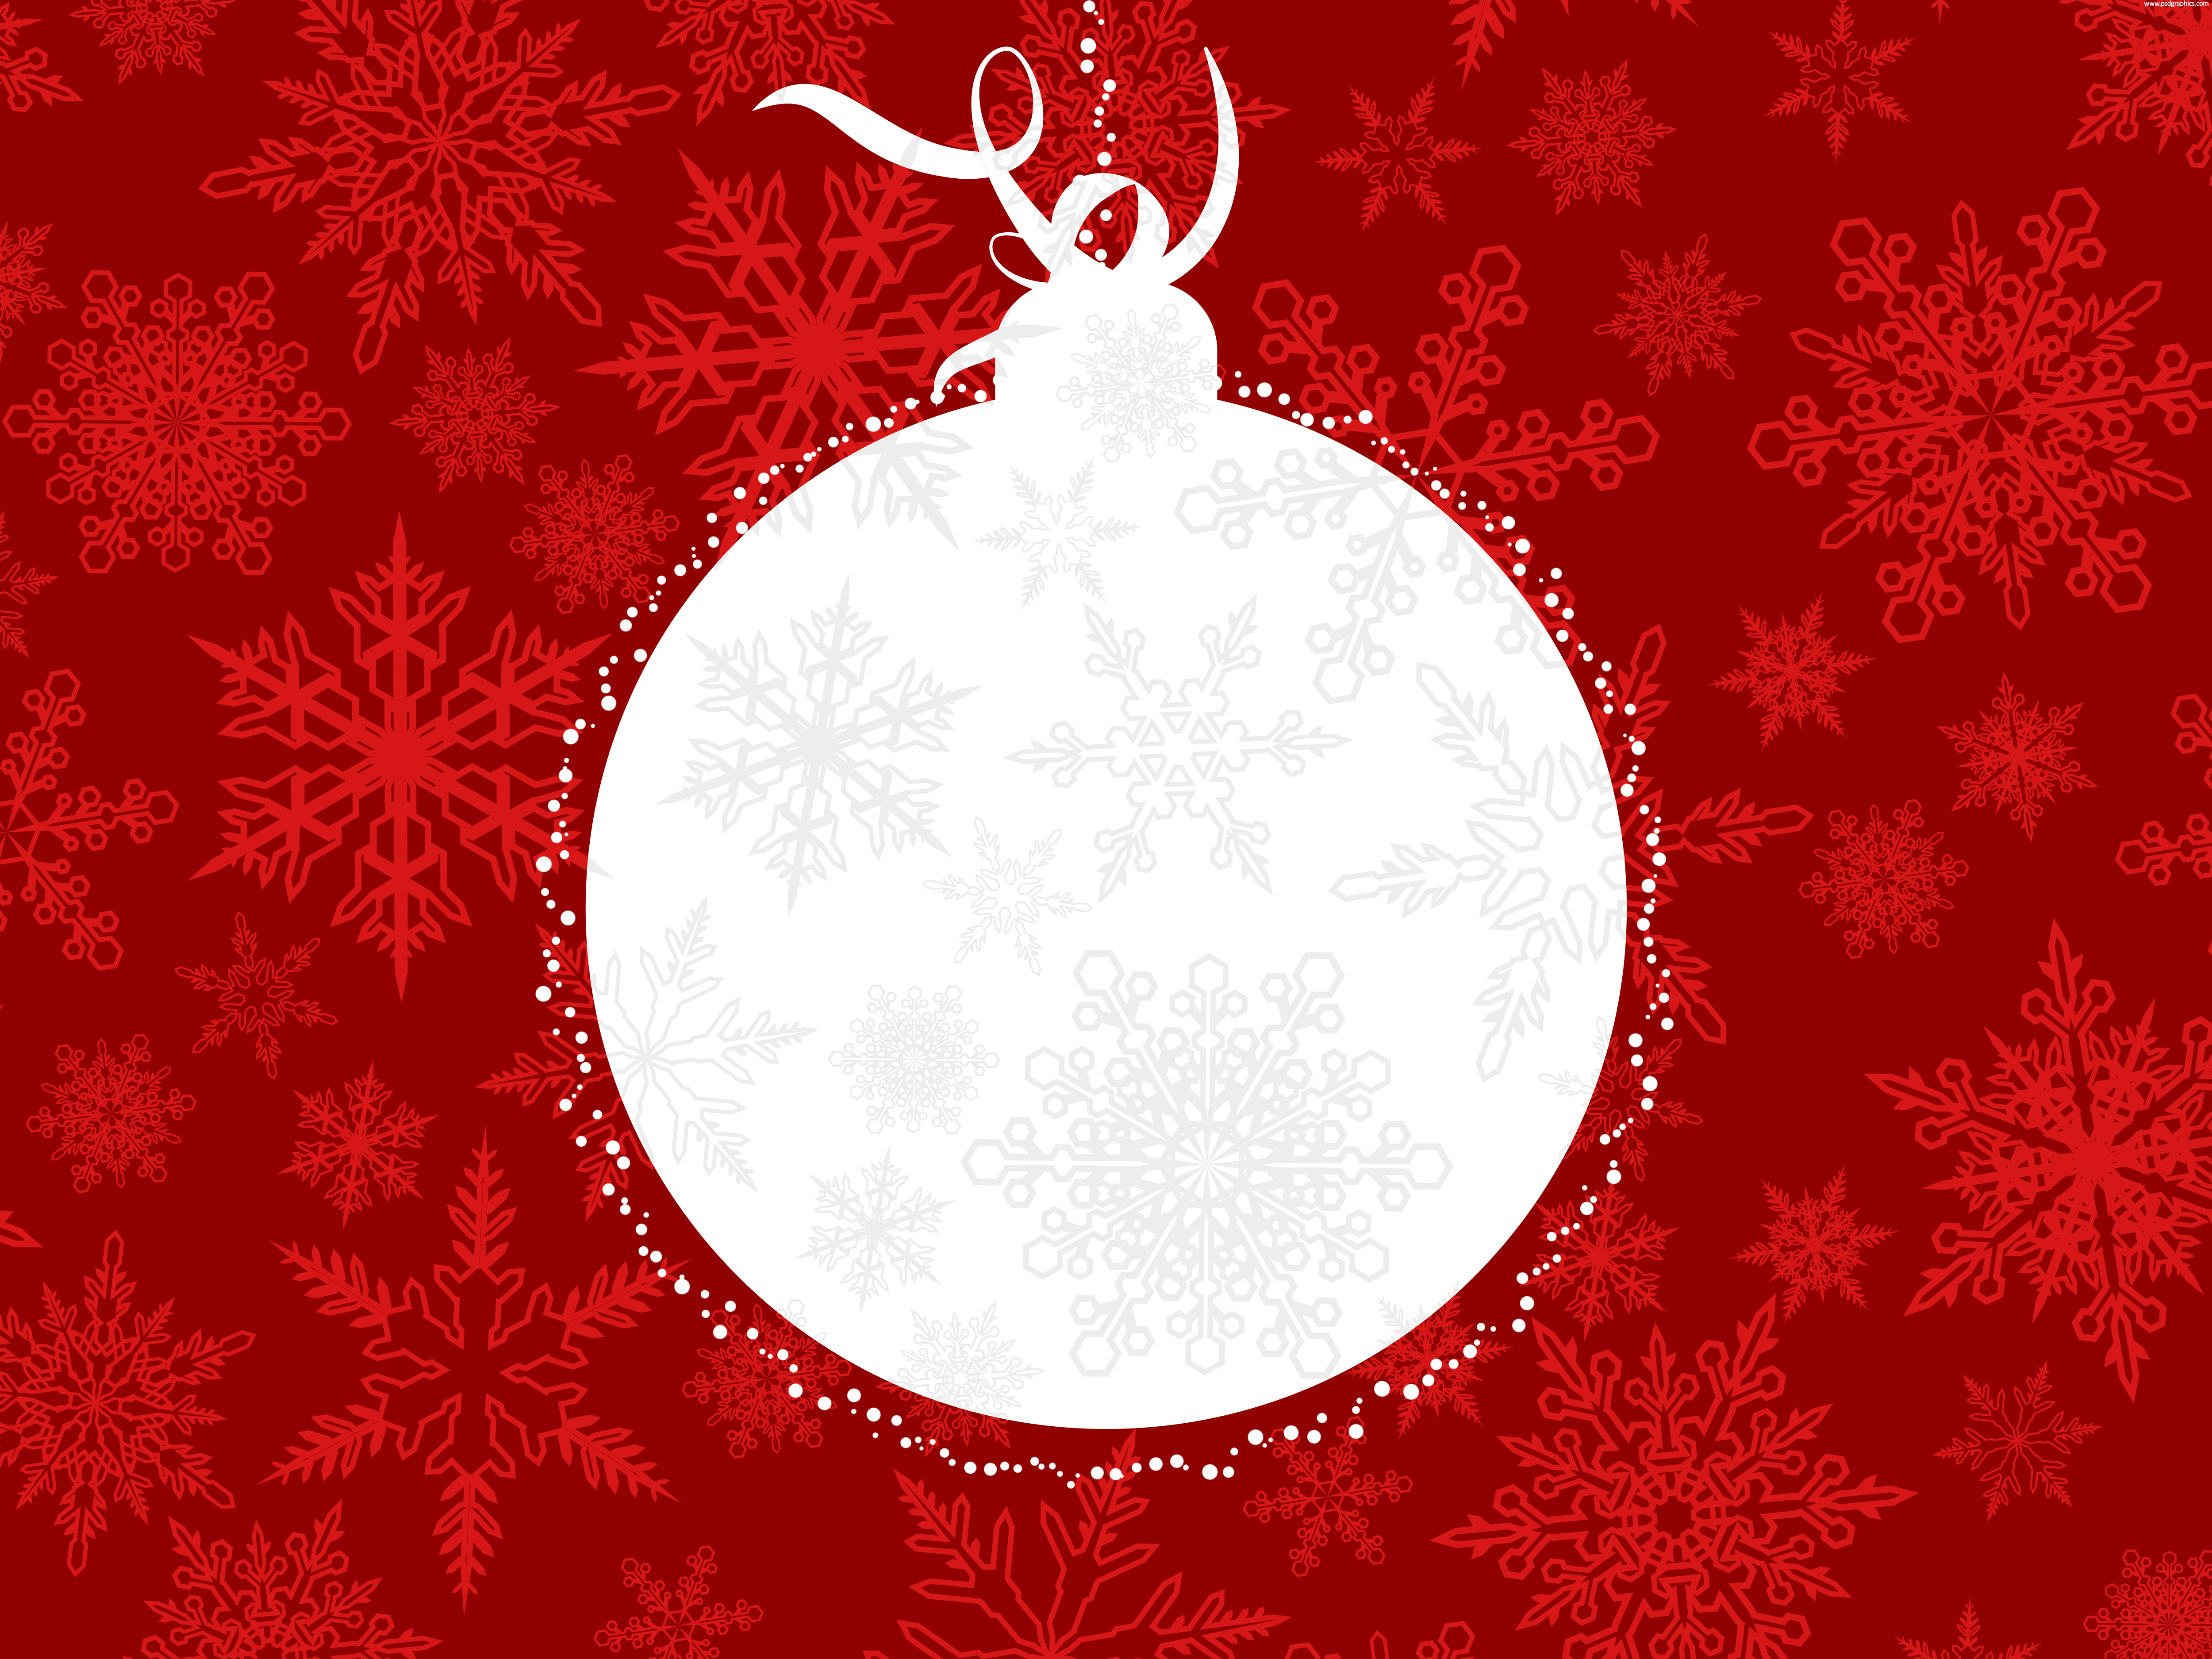 Abstract Christmas ball background | PSDGraphics